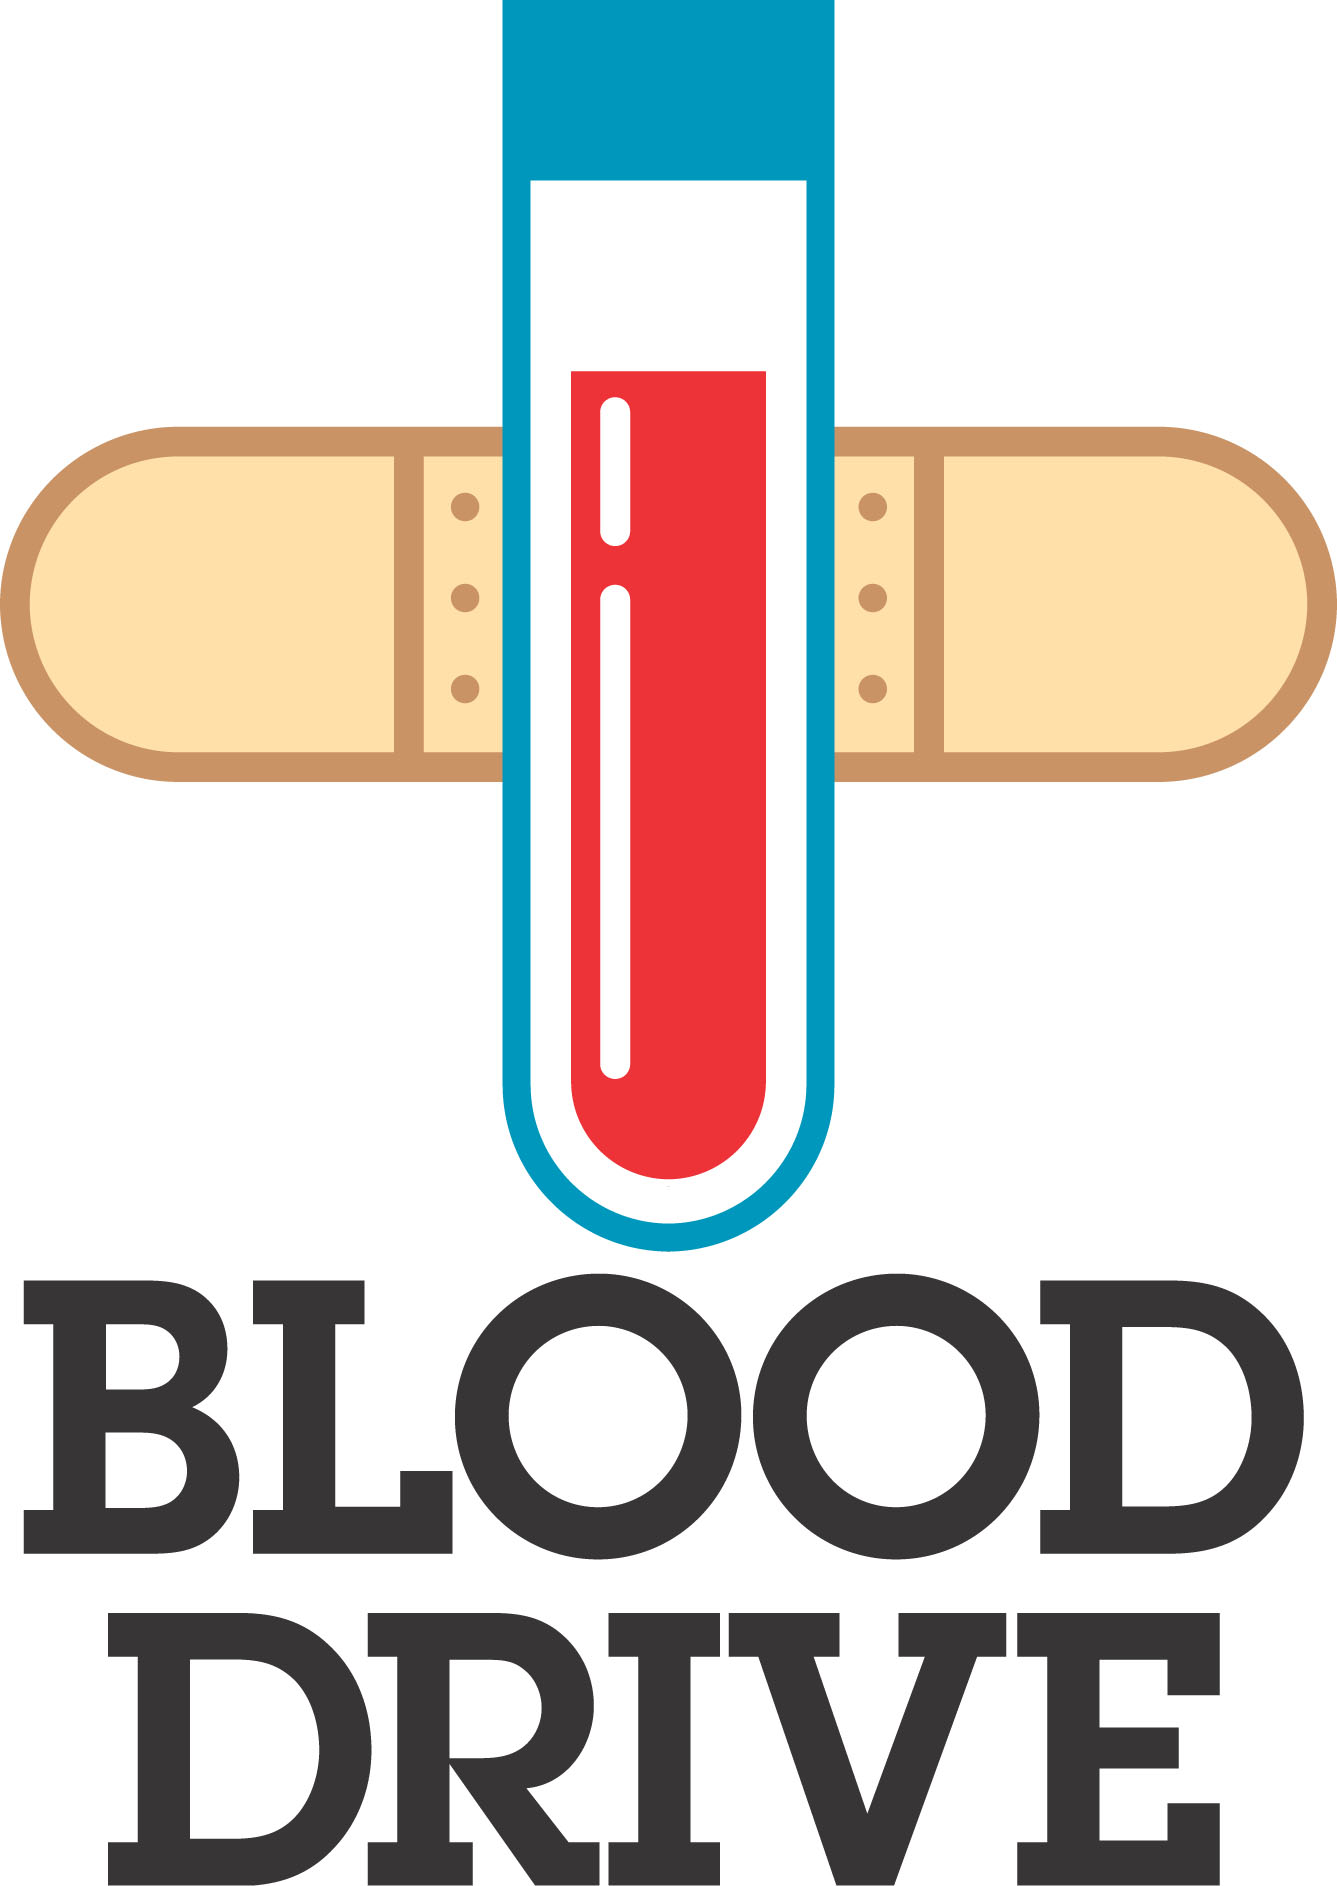 Blood Drive Images Clipart Best